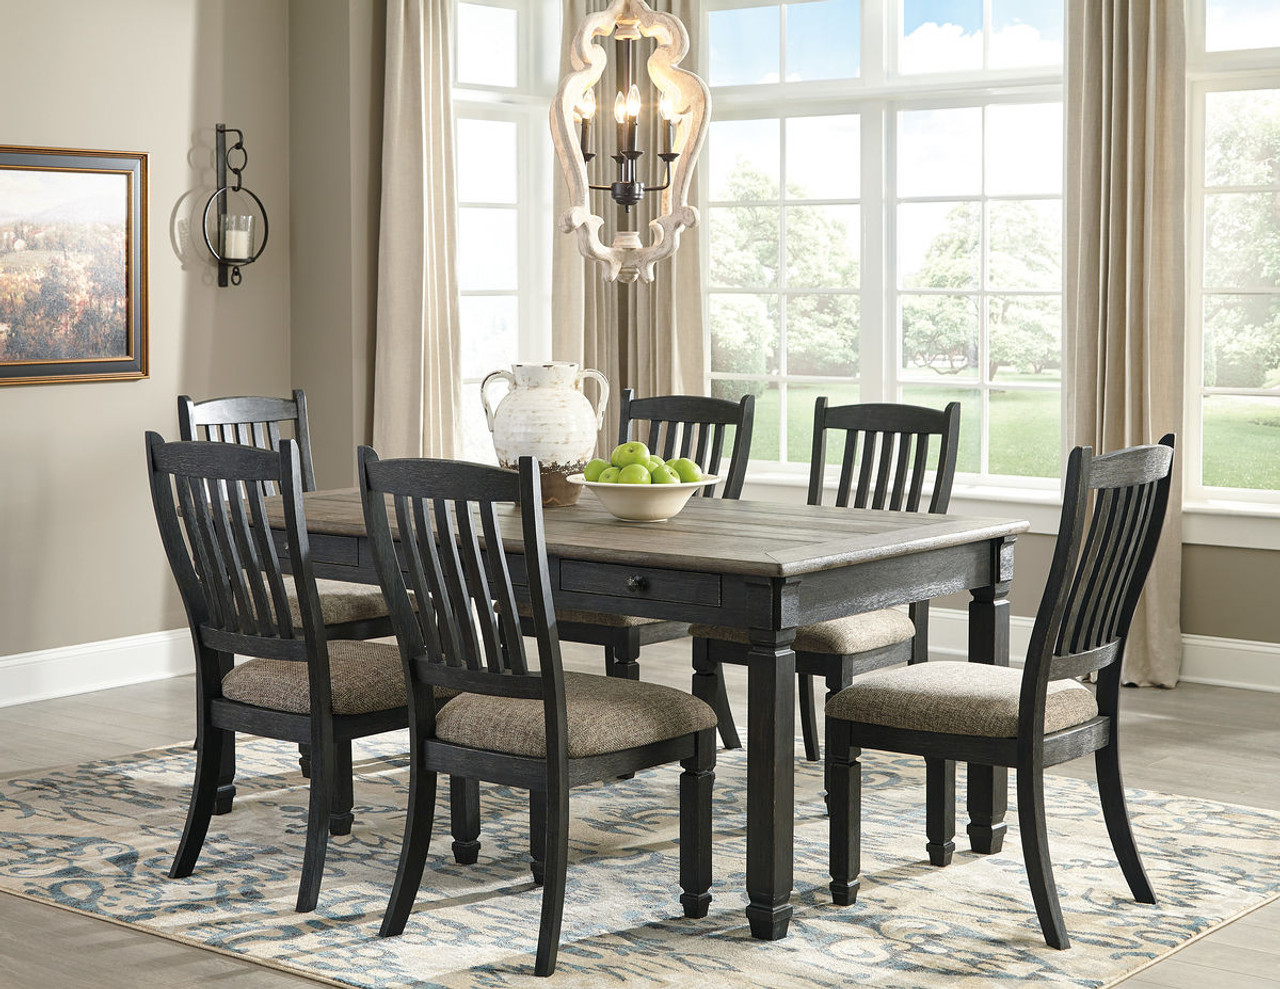 Picture of: Ashley Tyler Creek Black Gray 7 Pc Rectangular Dining Room Table 6 Uph Side Chairs On Sale At Red Shed Furniture Serving Goldsboro Wilson Greenville Nc